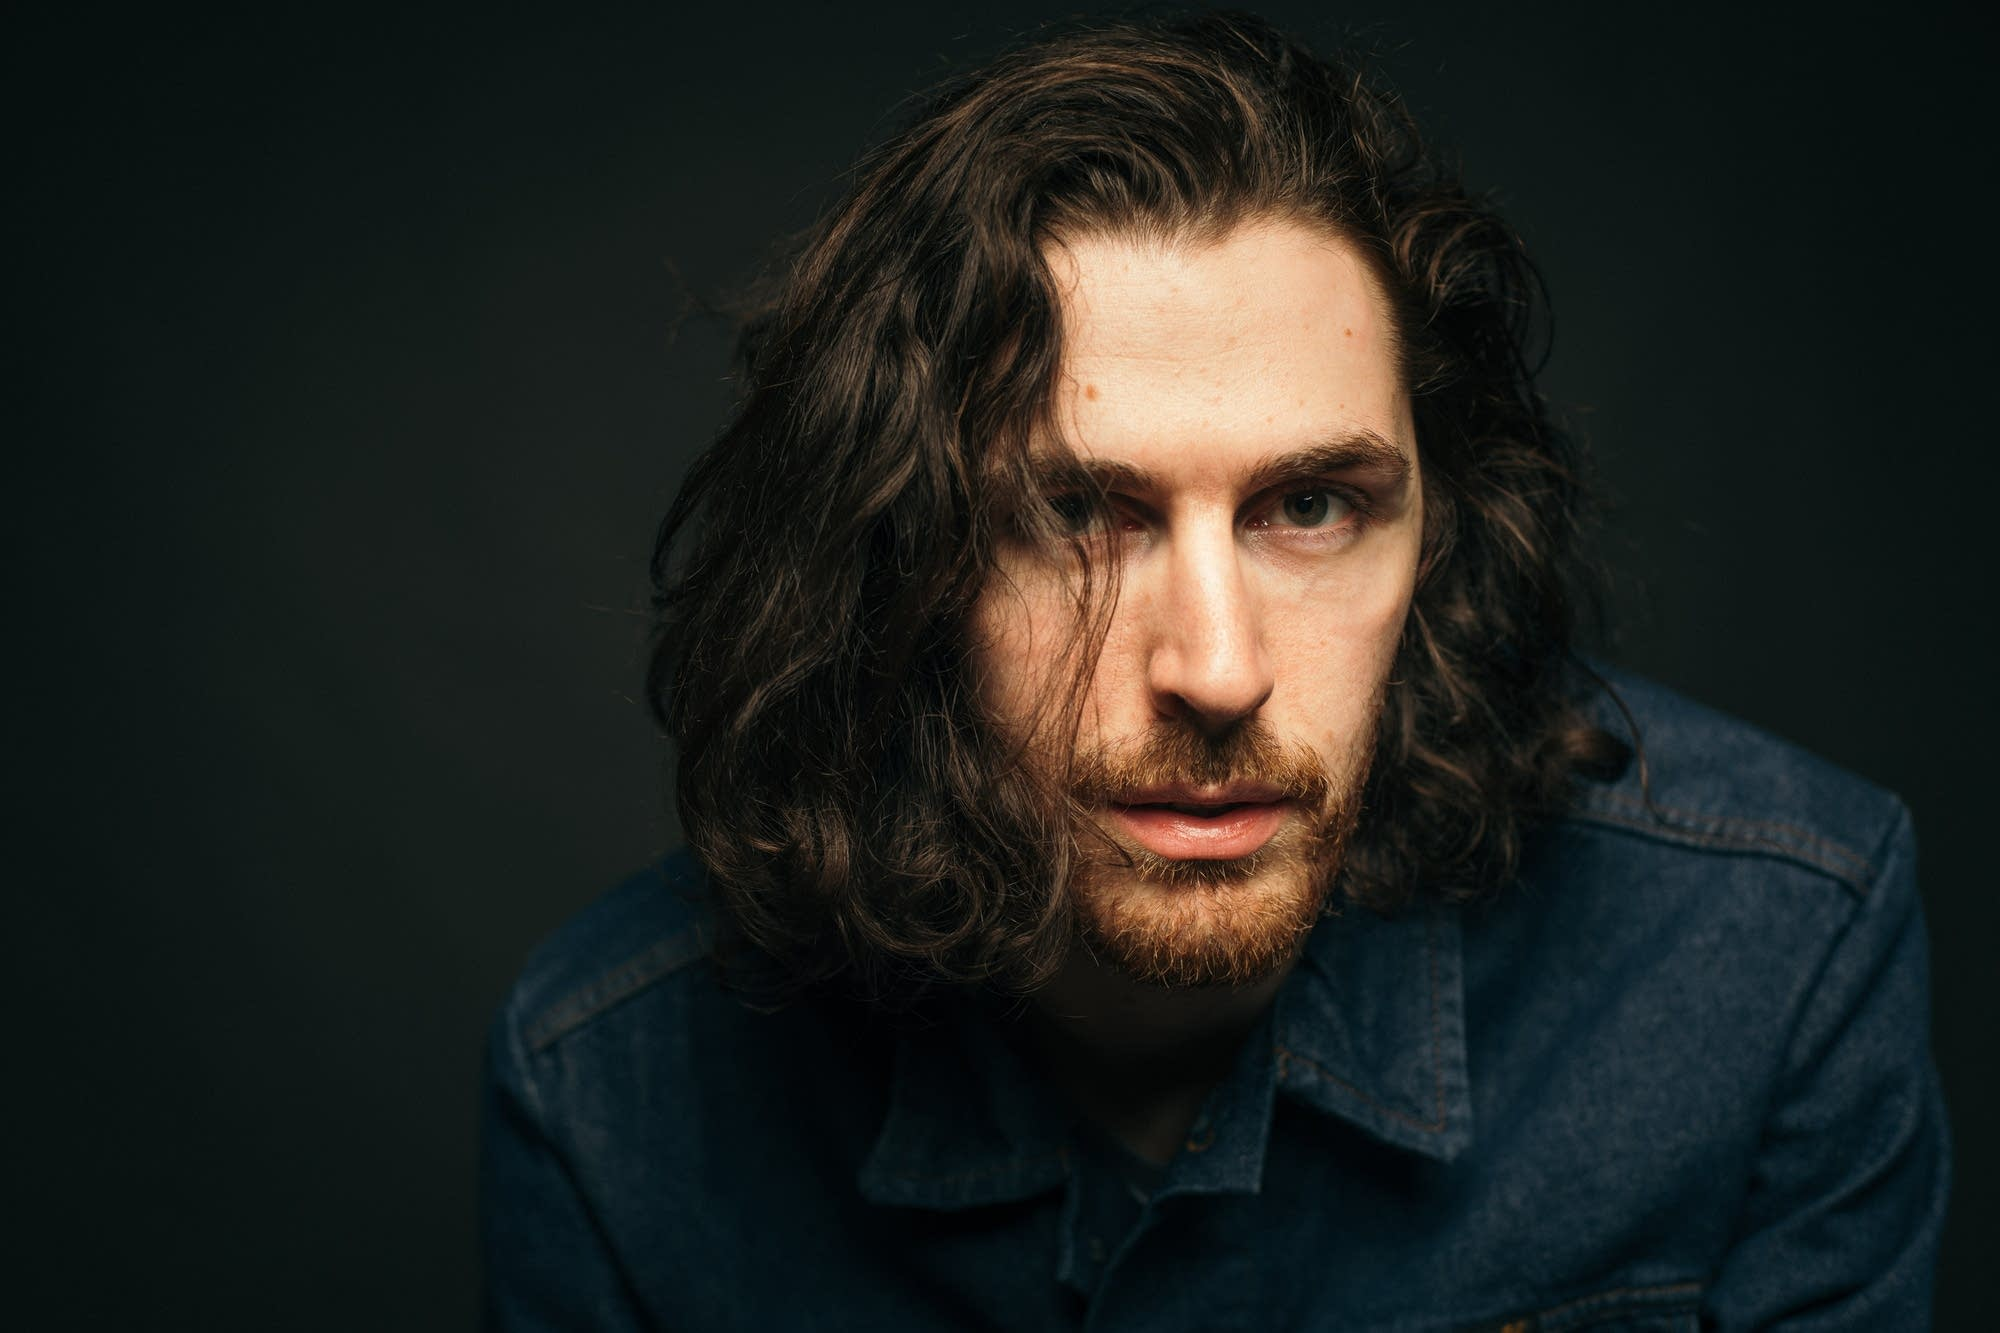 Hozier portrait at The Current